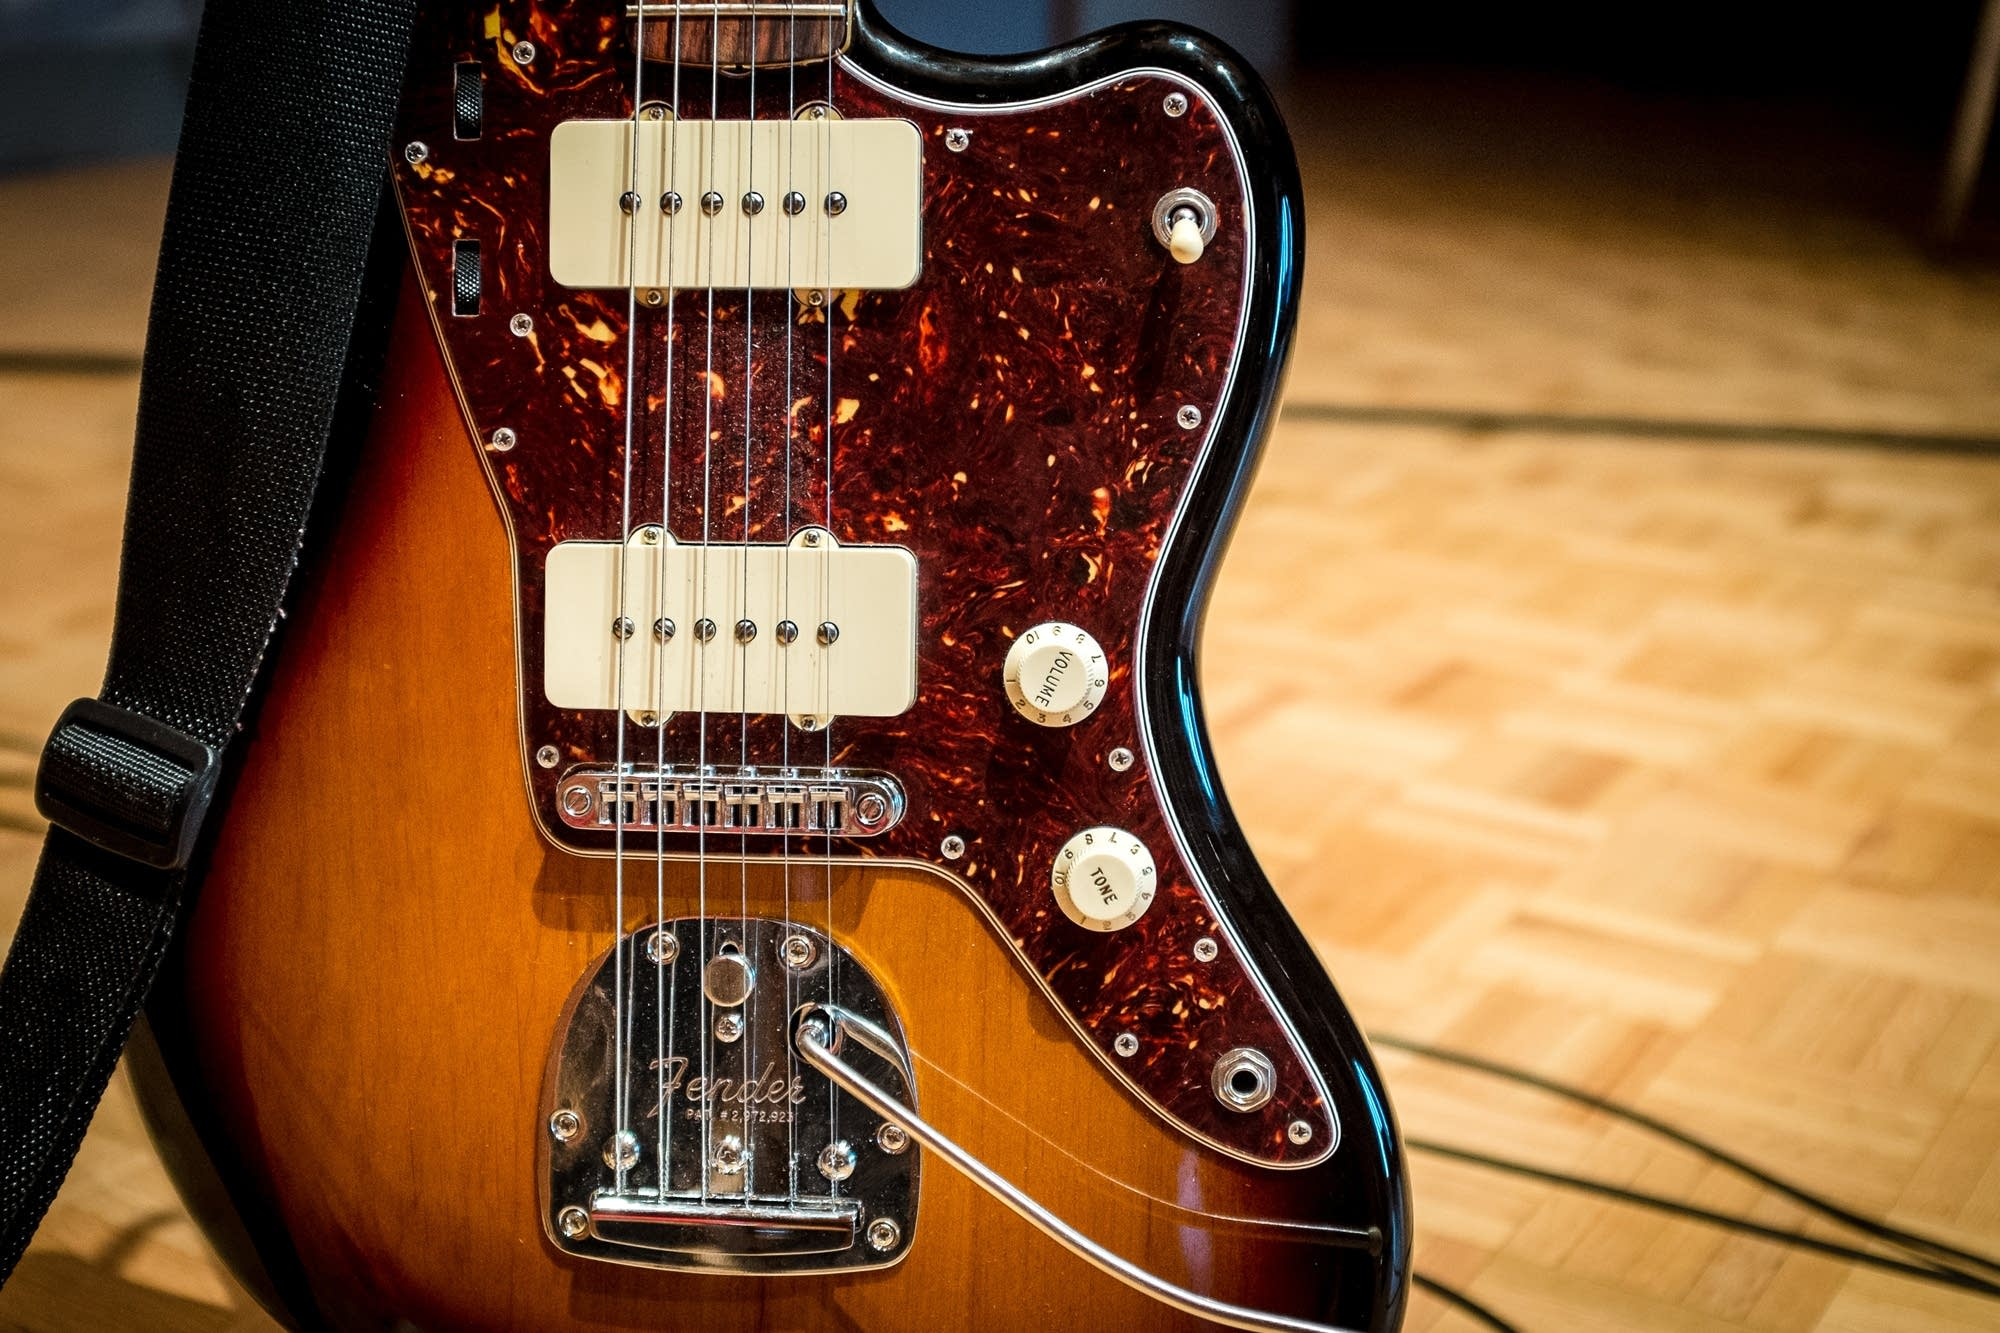 max kakacek, smith westerns, jazzmaster